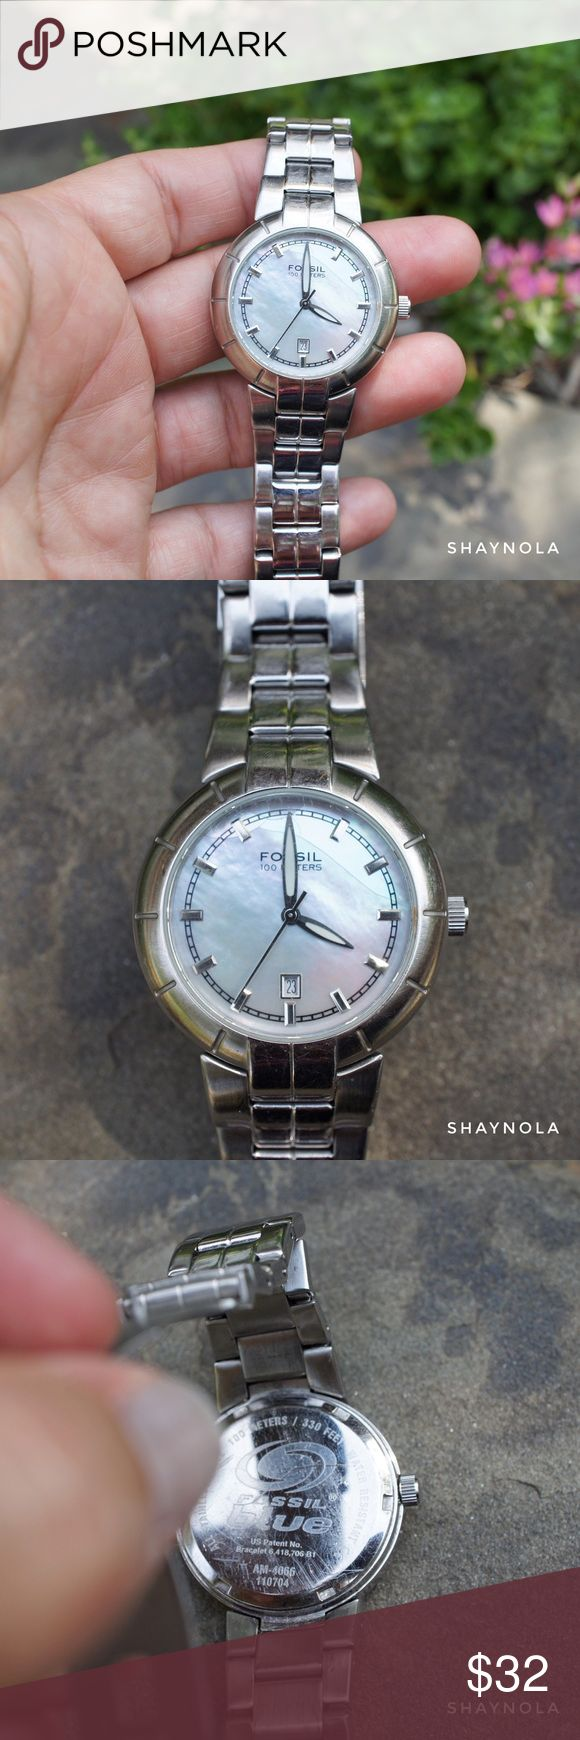 Stainless Fossil Blue Watch w Mother of Pearl Face A beautiful stainless steel fossil watch with mother of pearl face.  Fossil Blue watches are water resistant to 100 meters or 350ft. Good condition however the person that changed the battery cracked the mother of pearl face in the upper right corner. Still works but needs battery. Priced accordingly. Fossil Accessories Watches